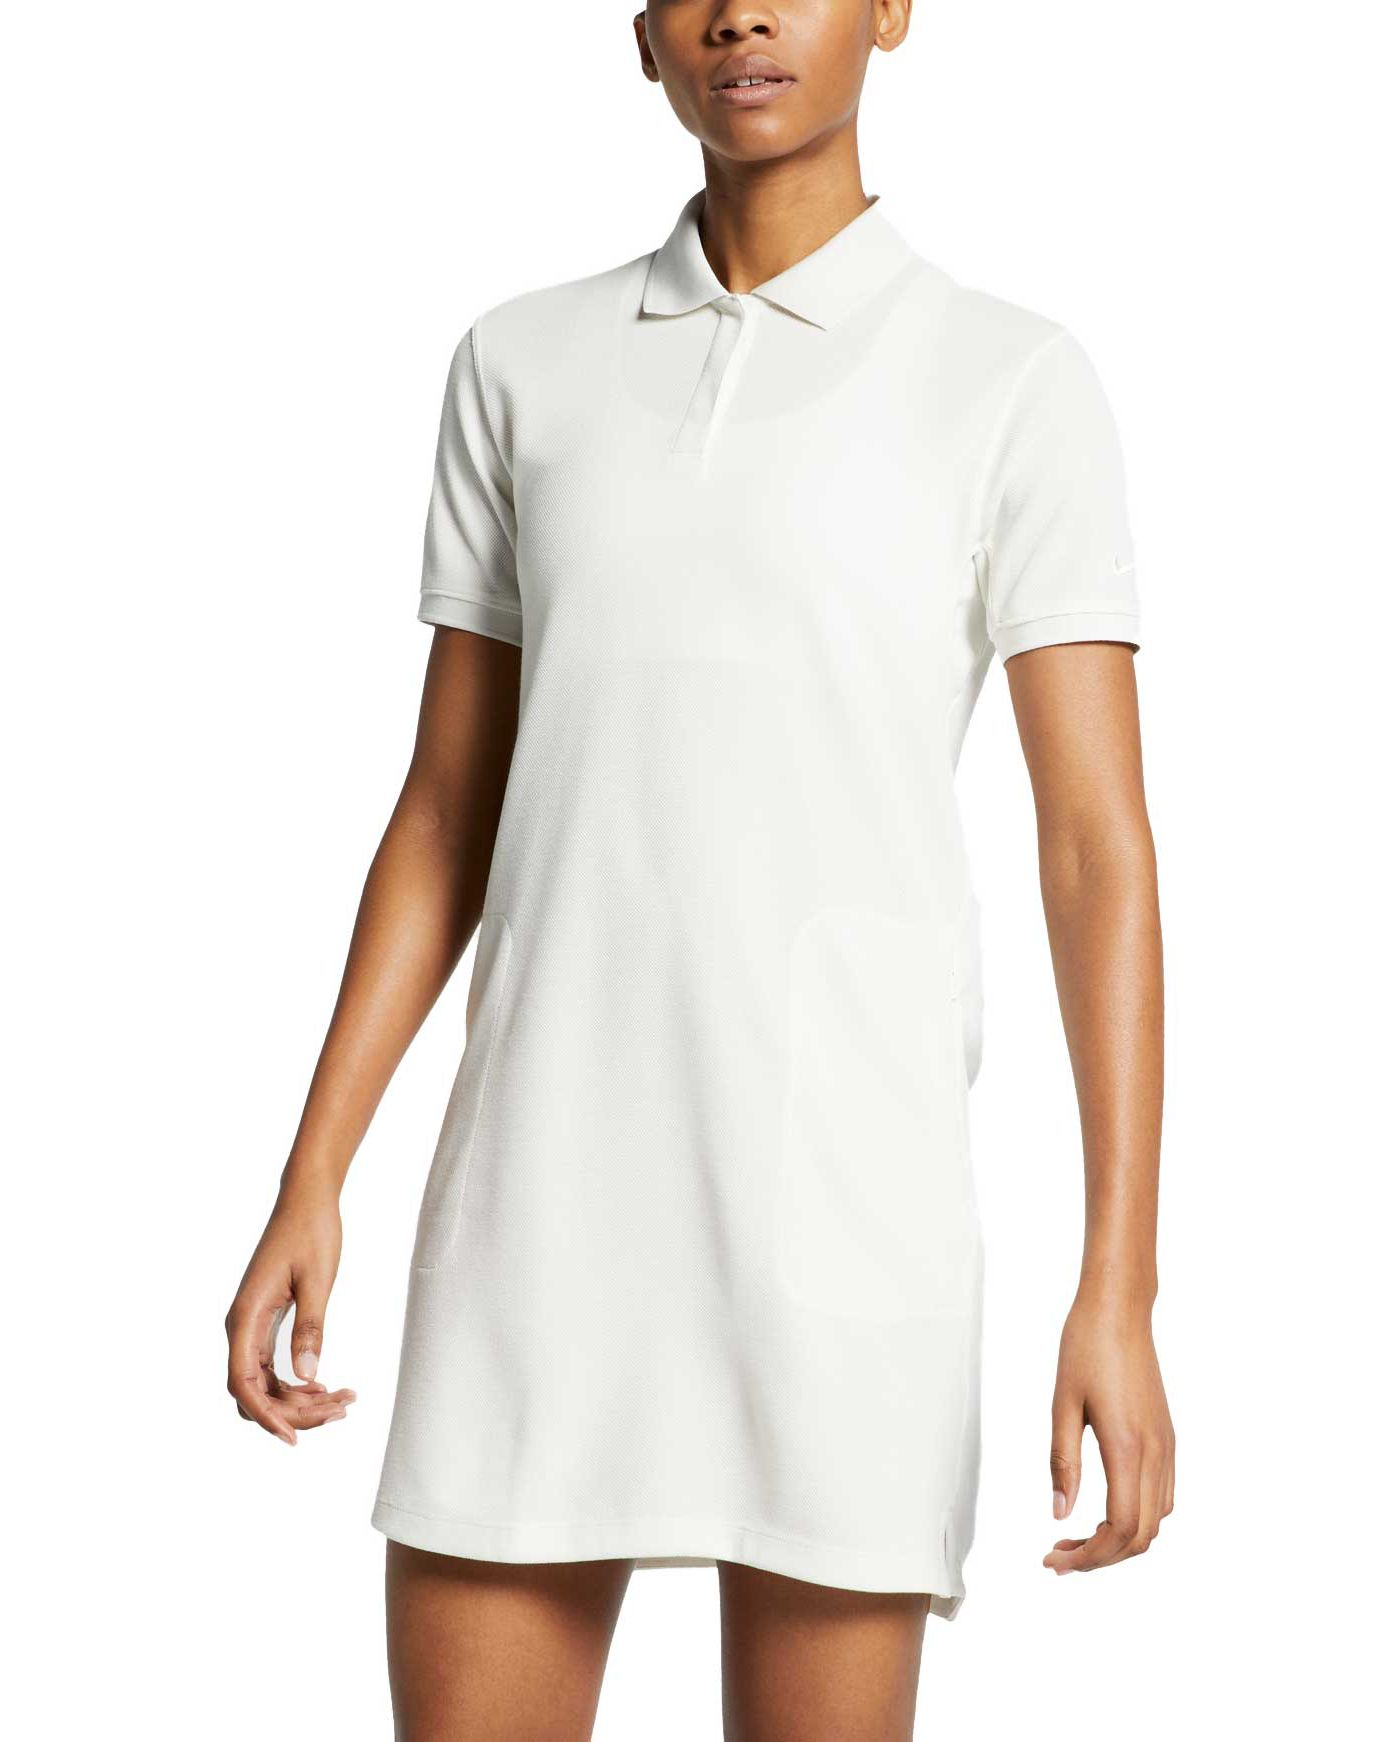 Nike Women's Dri-FIT Golf Dress